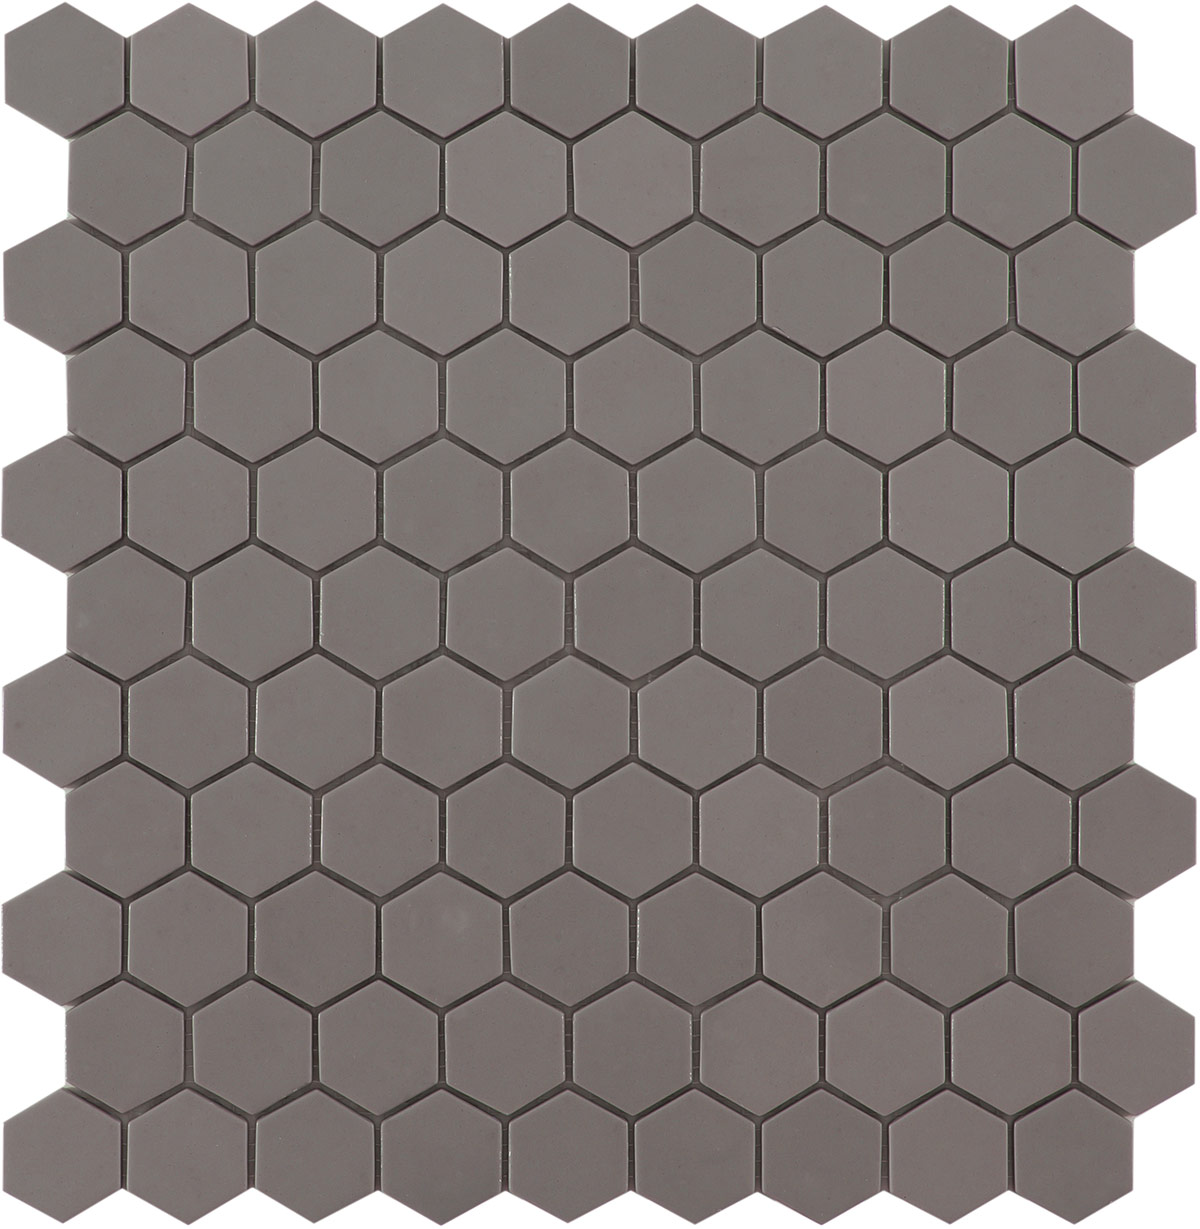 Frappe Matt #926 Flat Hex Vidrepur Nordic Glass Mosaic Tile, 35mm, 1 sheet